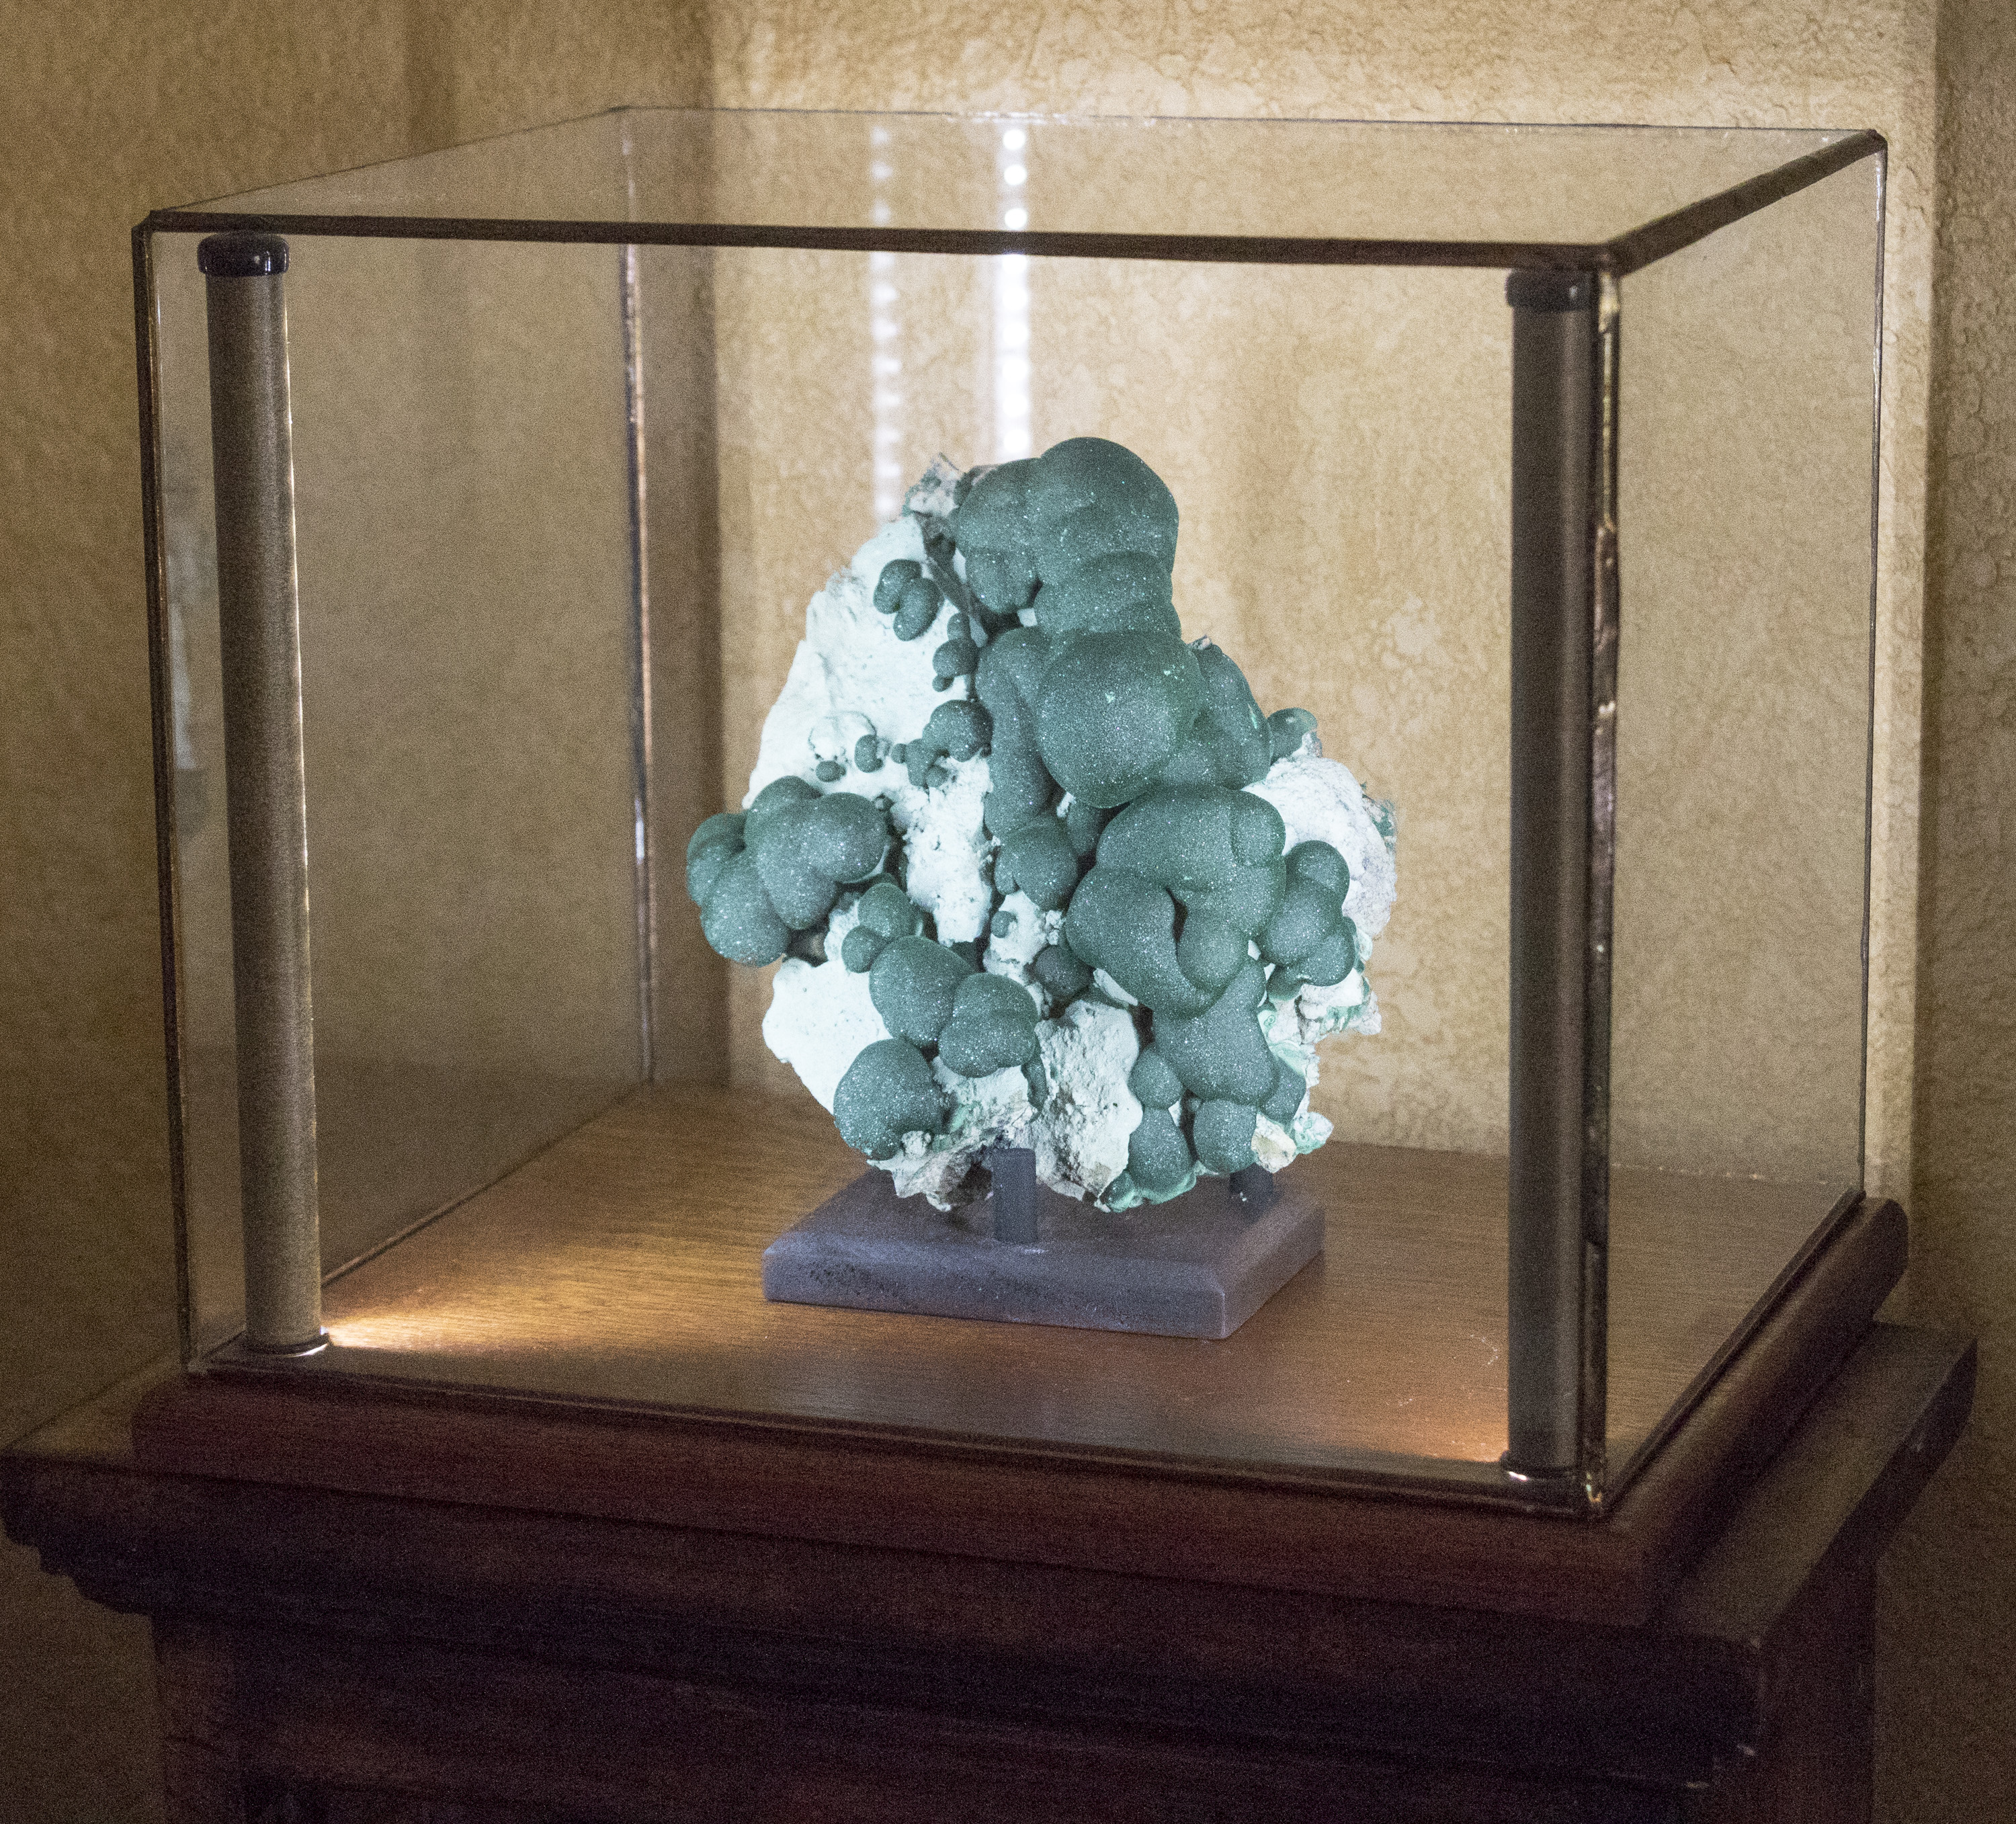 Greenstone Lighted Display Cases For Minerals Art Curios